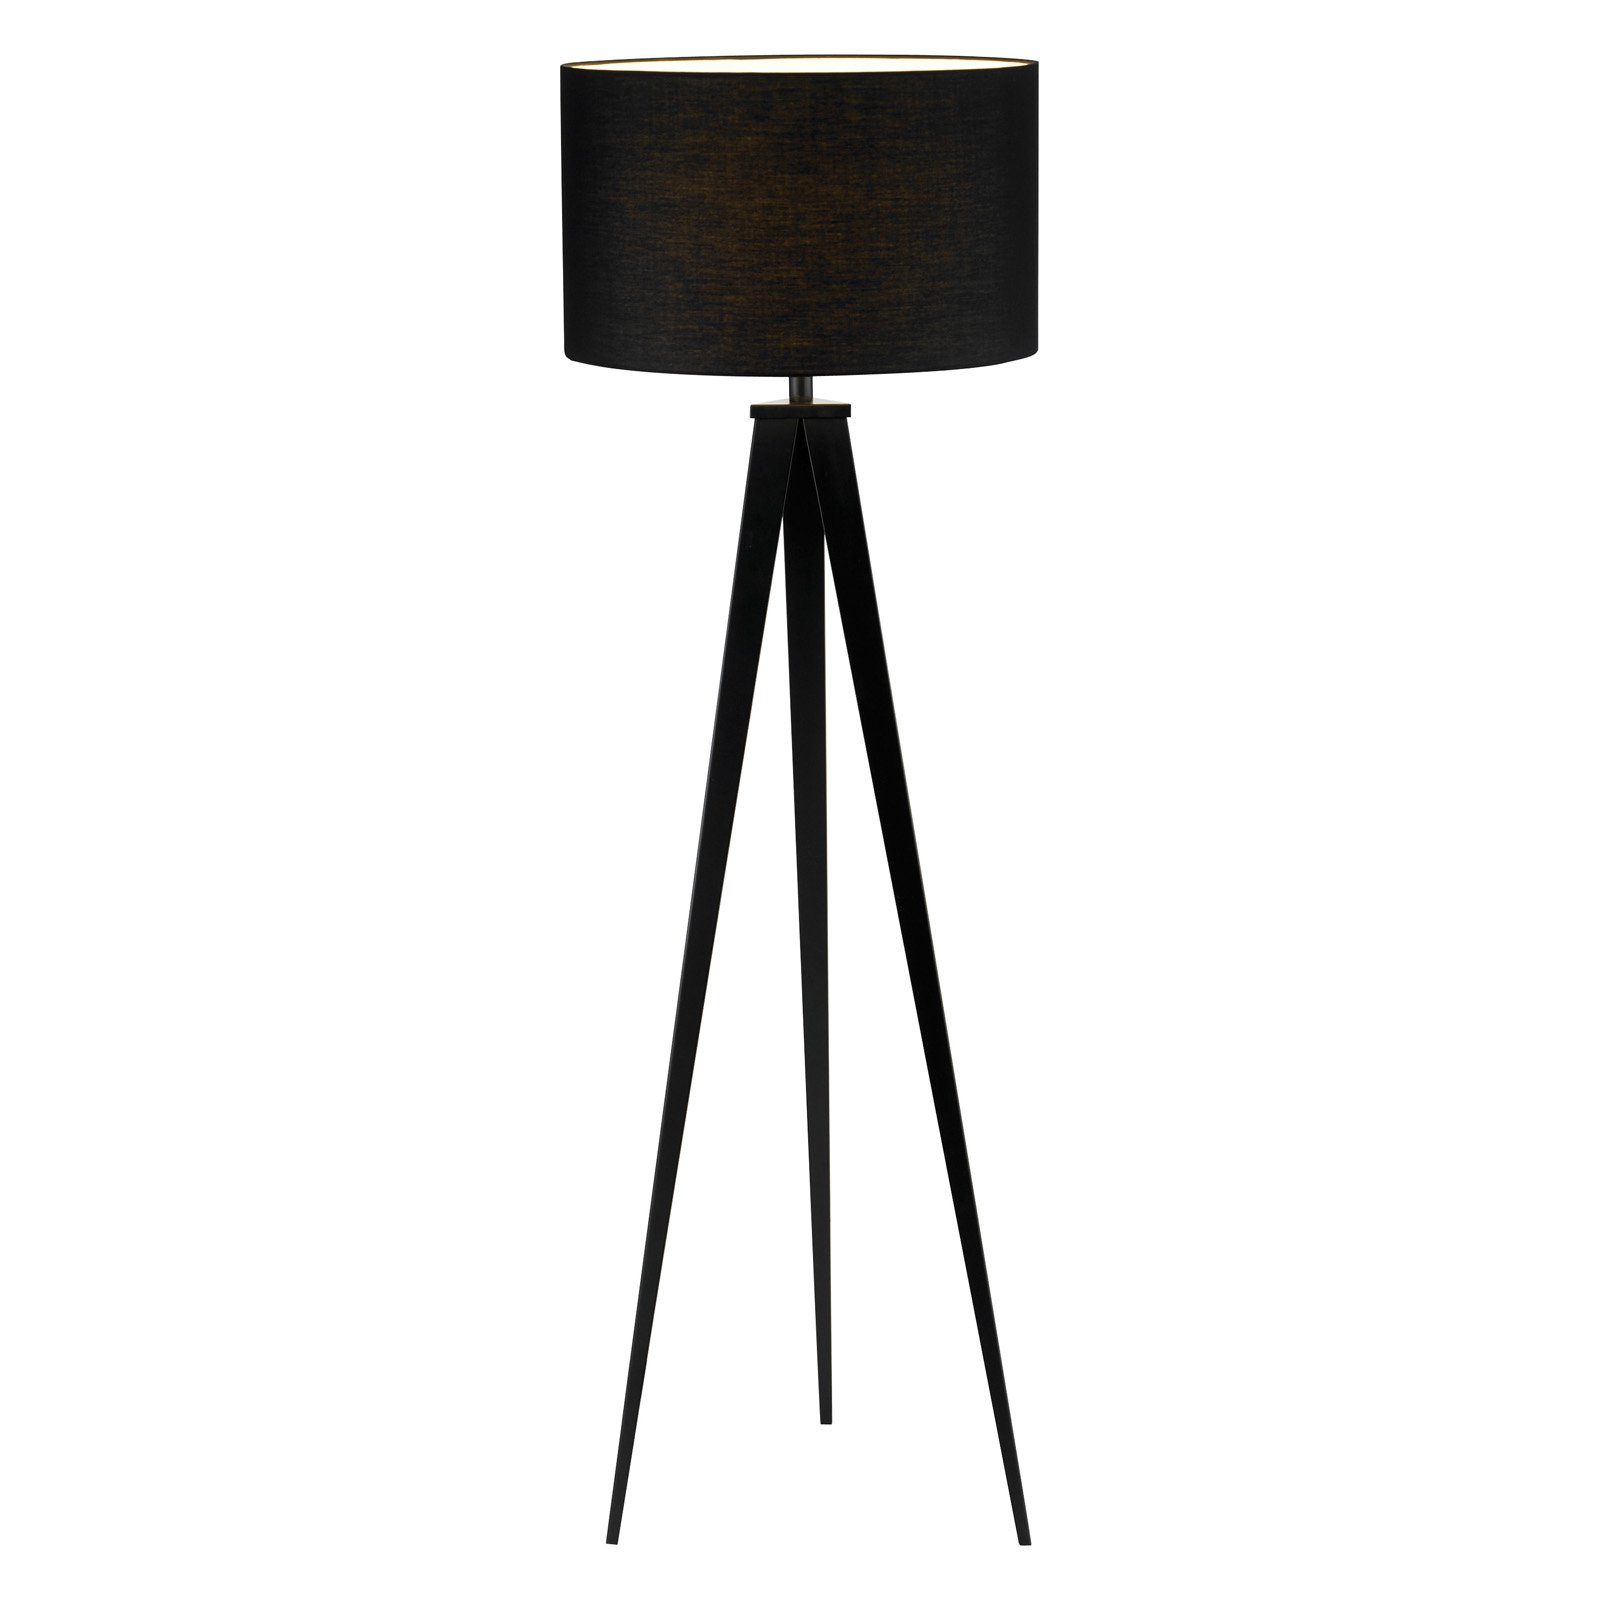 Adesso Director Floor Lamp by Adesso